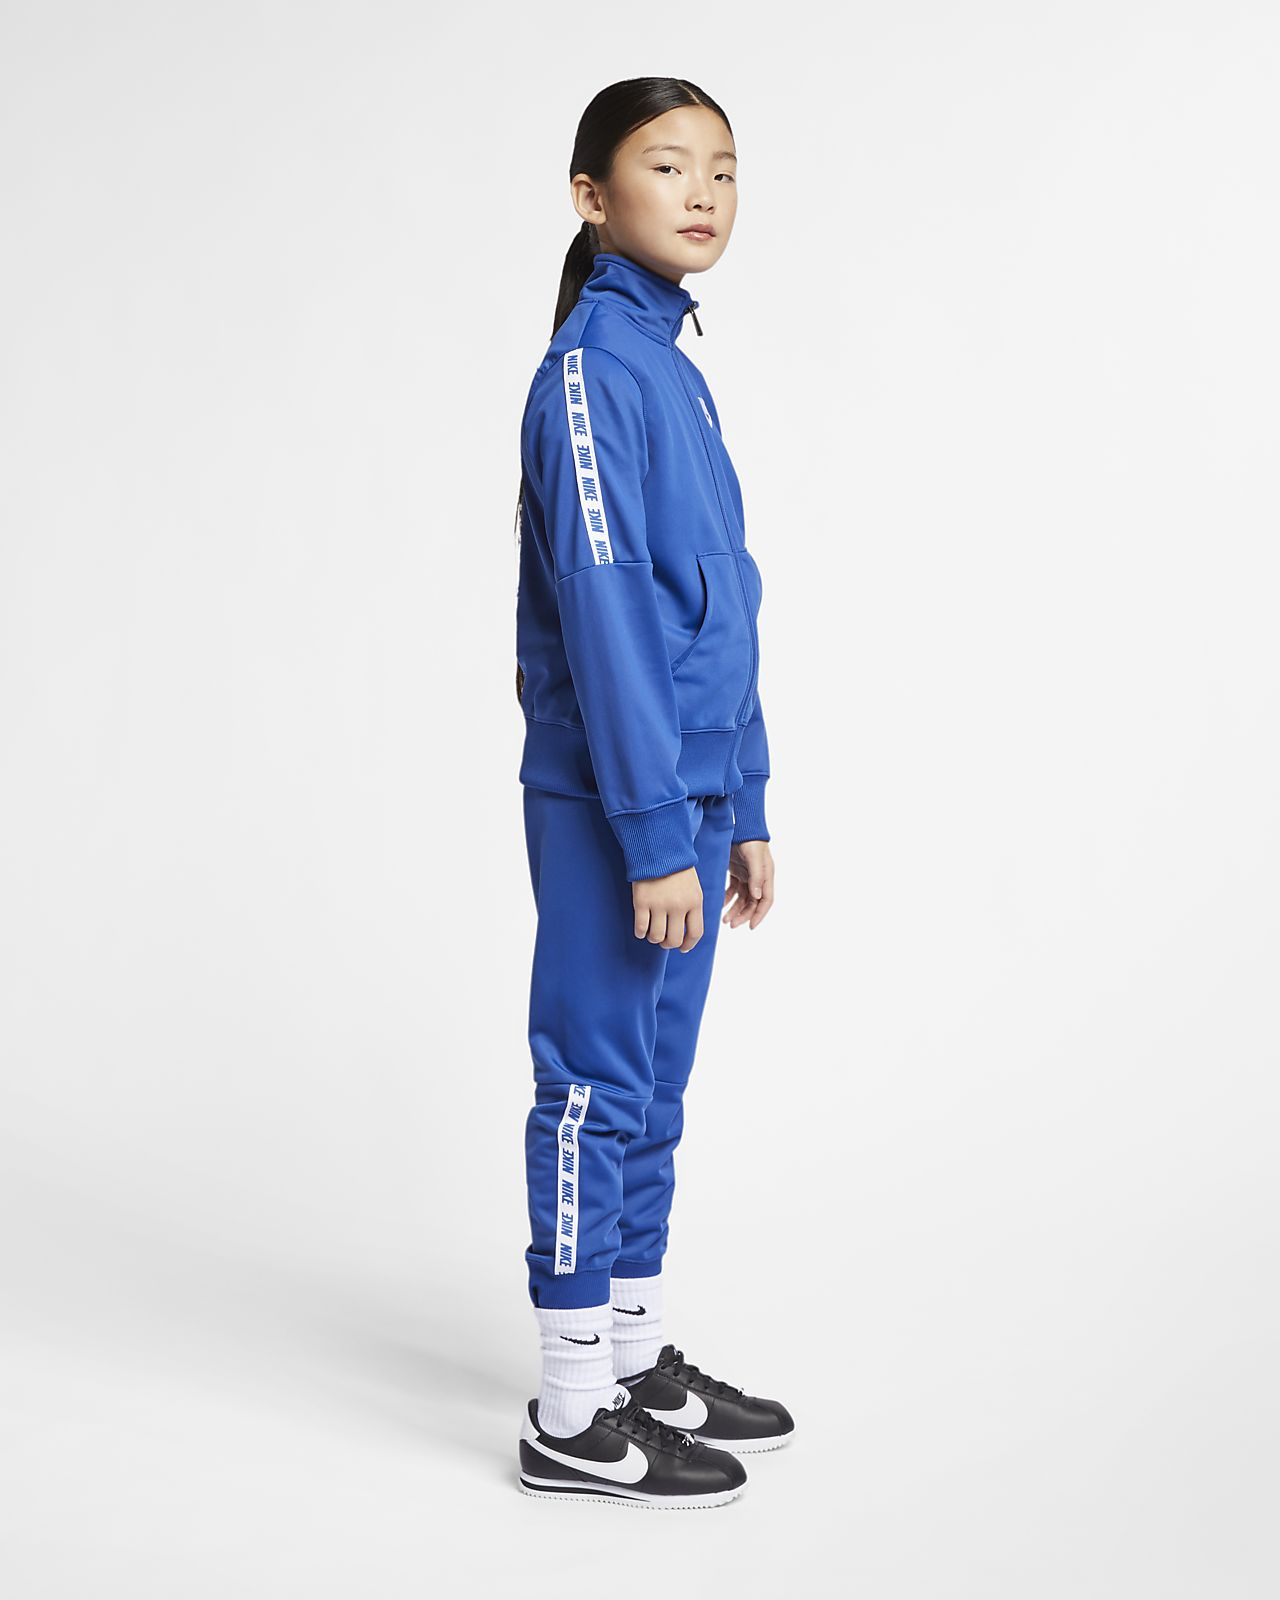 1b31cd33c2b72 Nike Sportswear Older Kids  (Girls ) Tracksuit. Nike.com GB